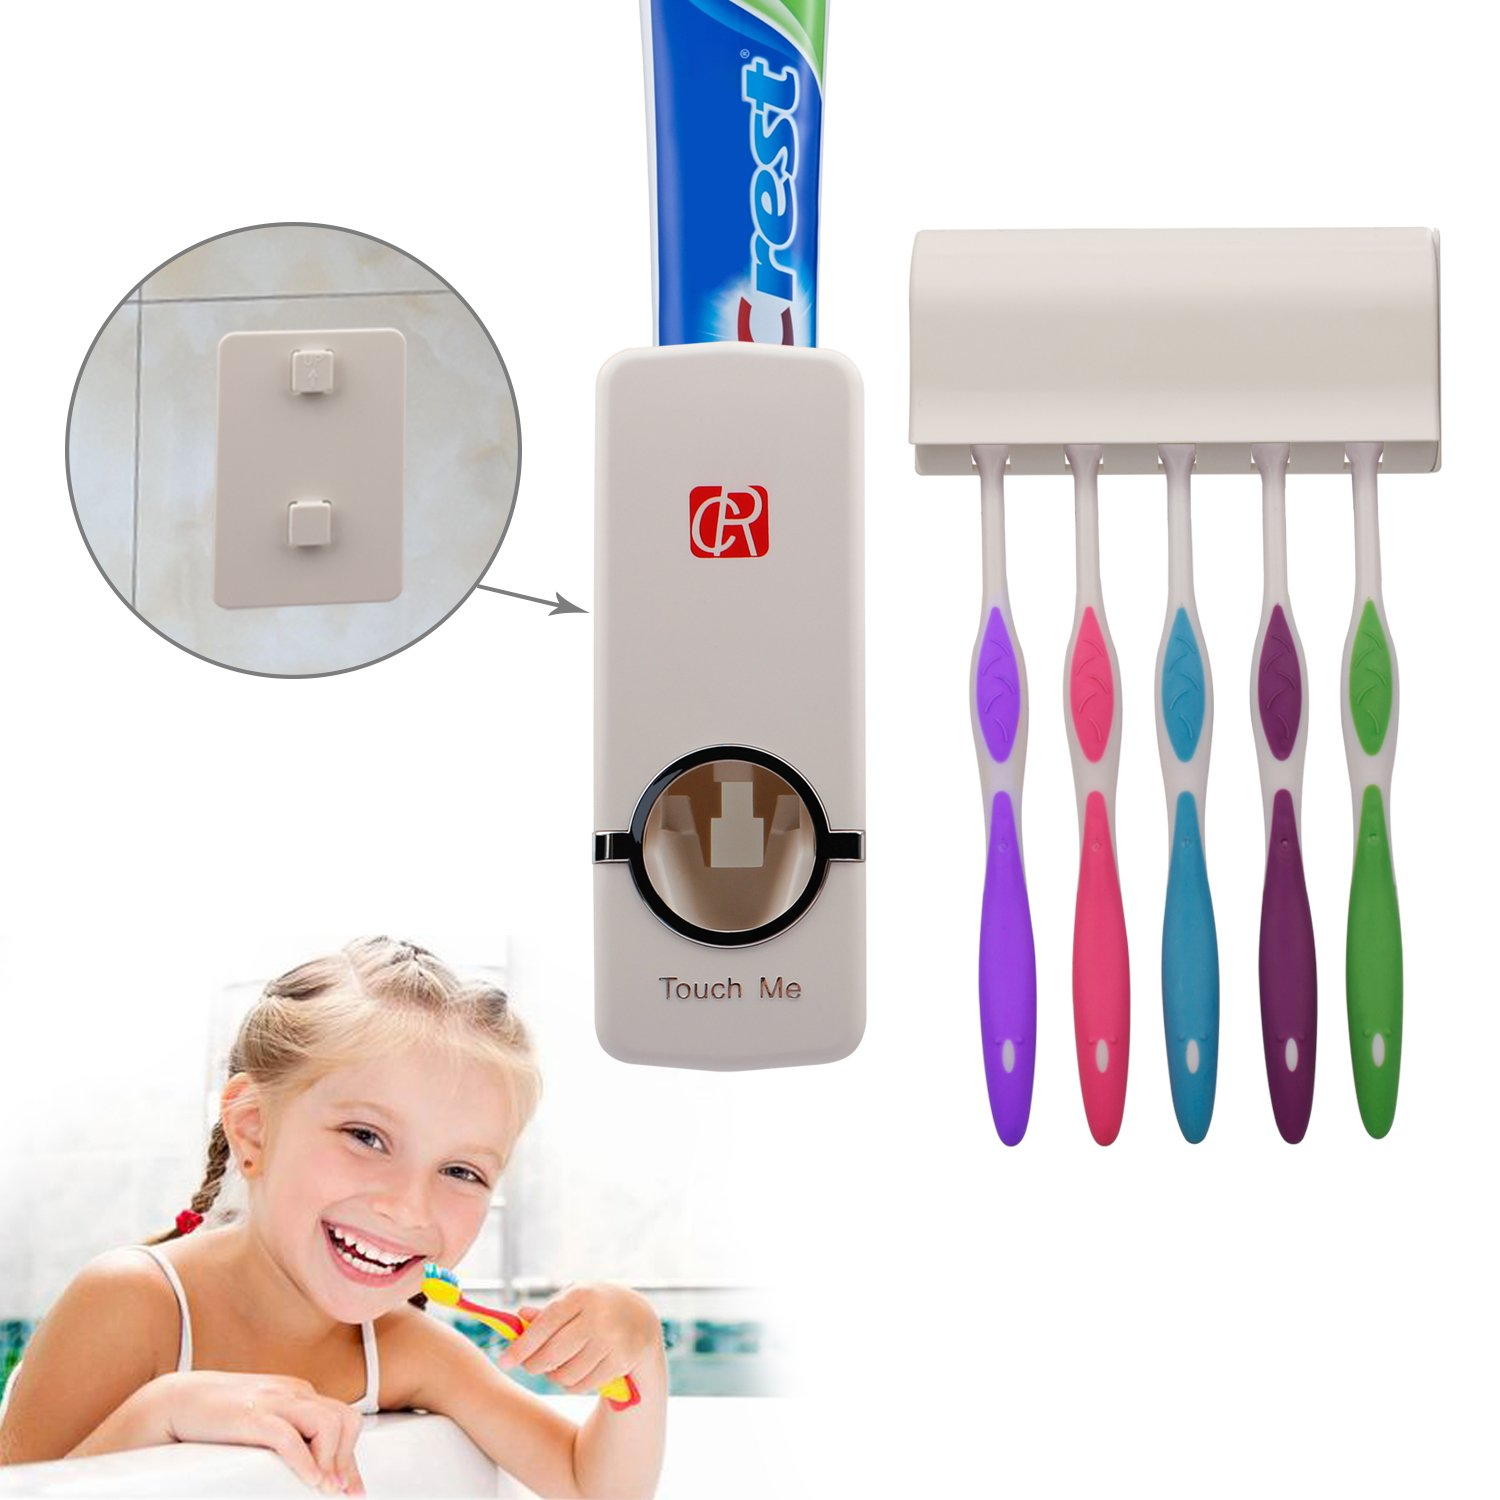 Amazon com  RC Auto Toothpaste Dispenser  Hands Free Toothpaste Squeezer  Wall Mount Toothbrush Holders Bathroom Organizer with 2 Hooks  Sticks    Cleaning. Amazon com  RC Auto Toothpaste Dispenser  Hands Free Toothpaste